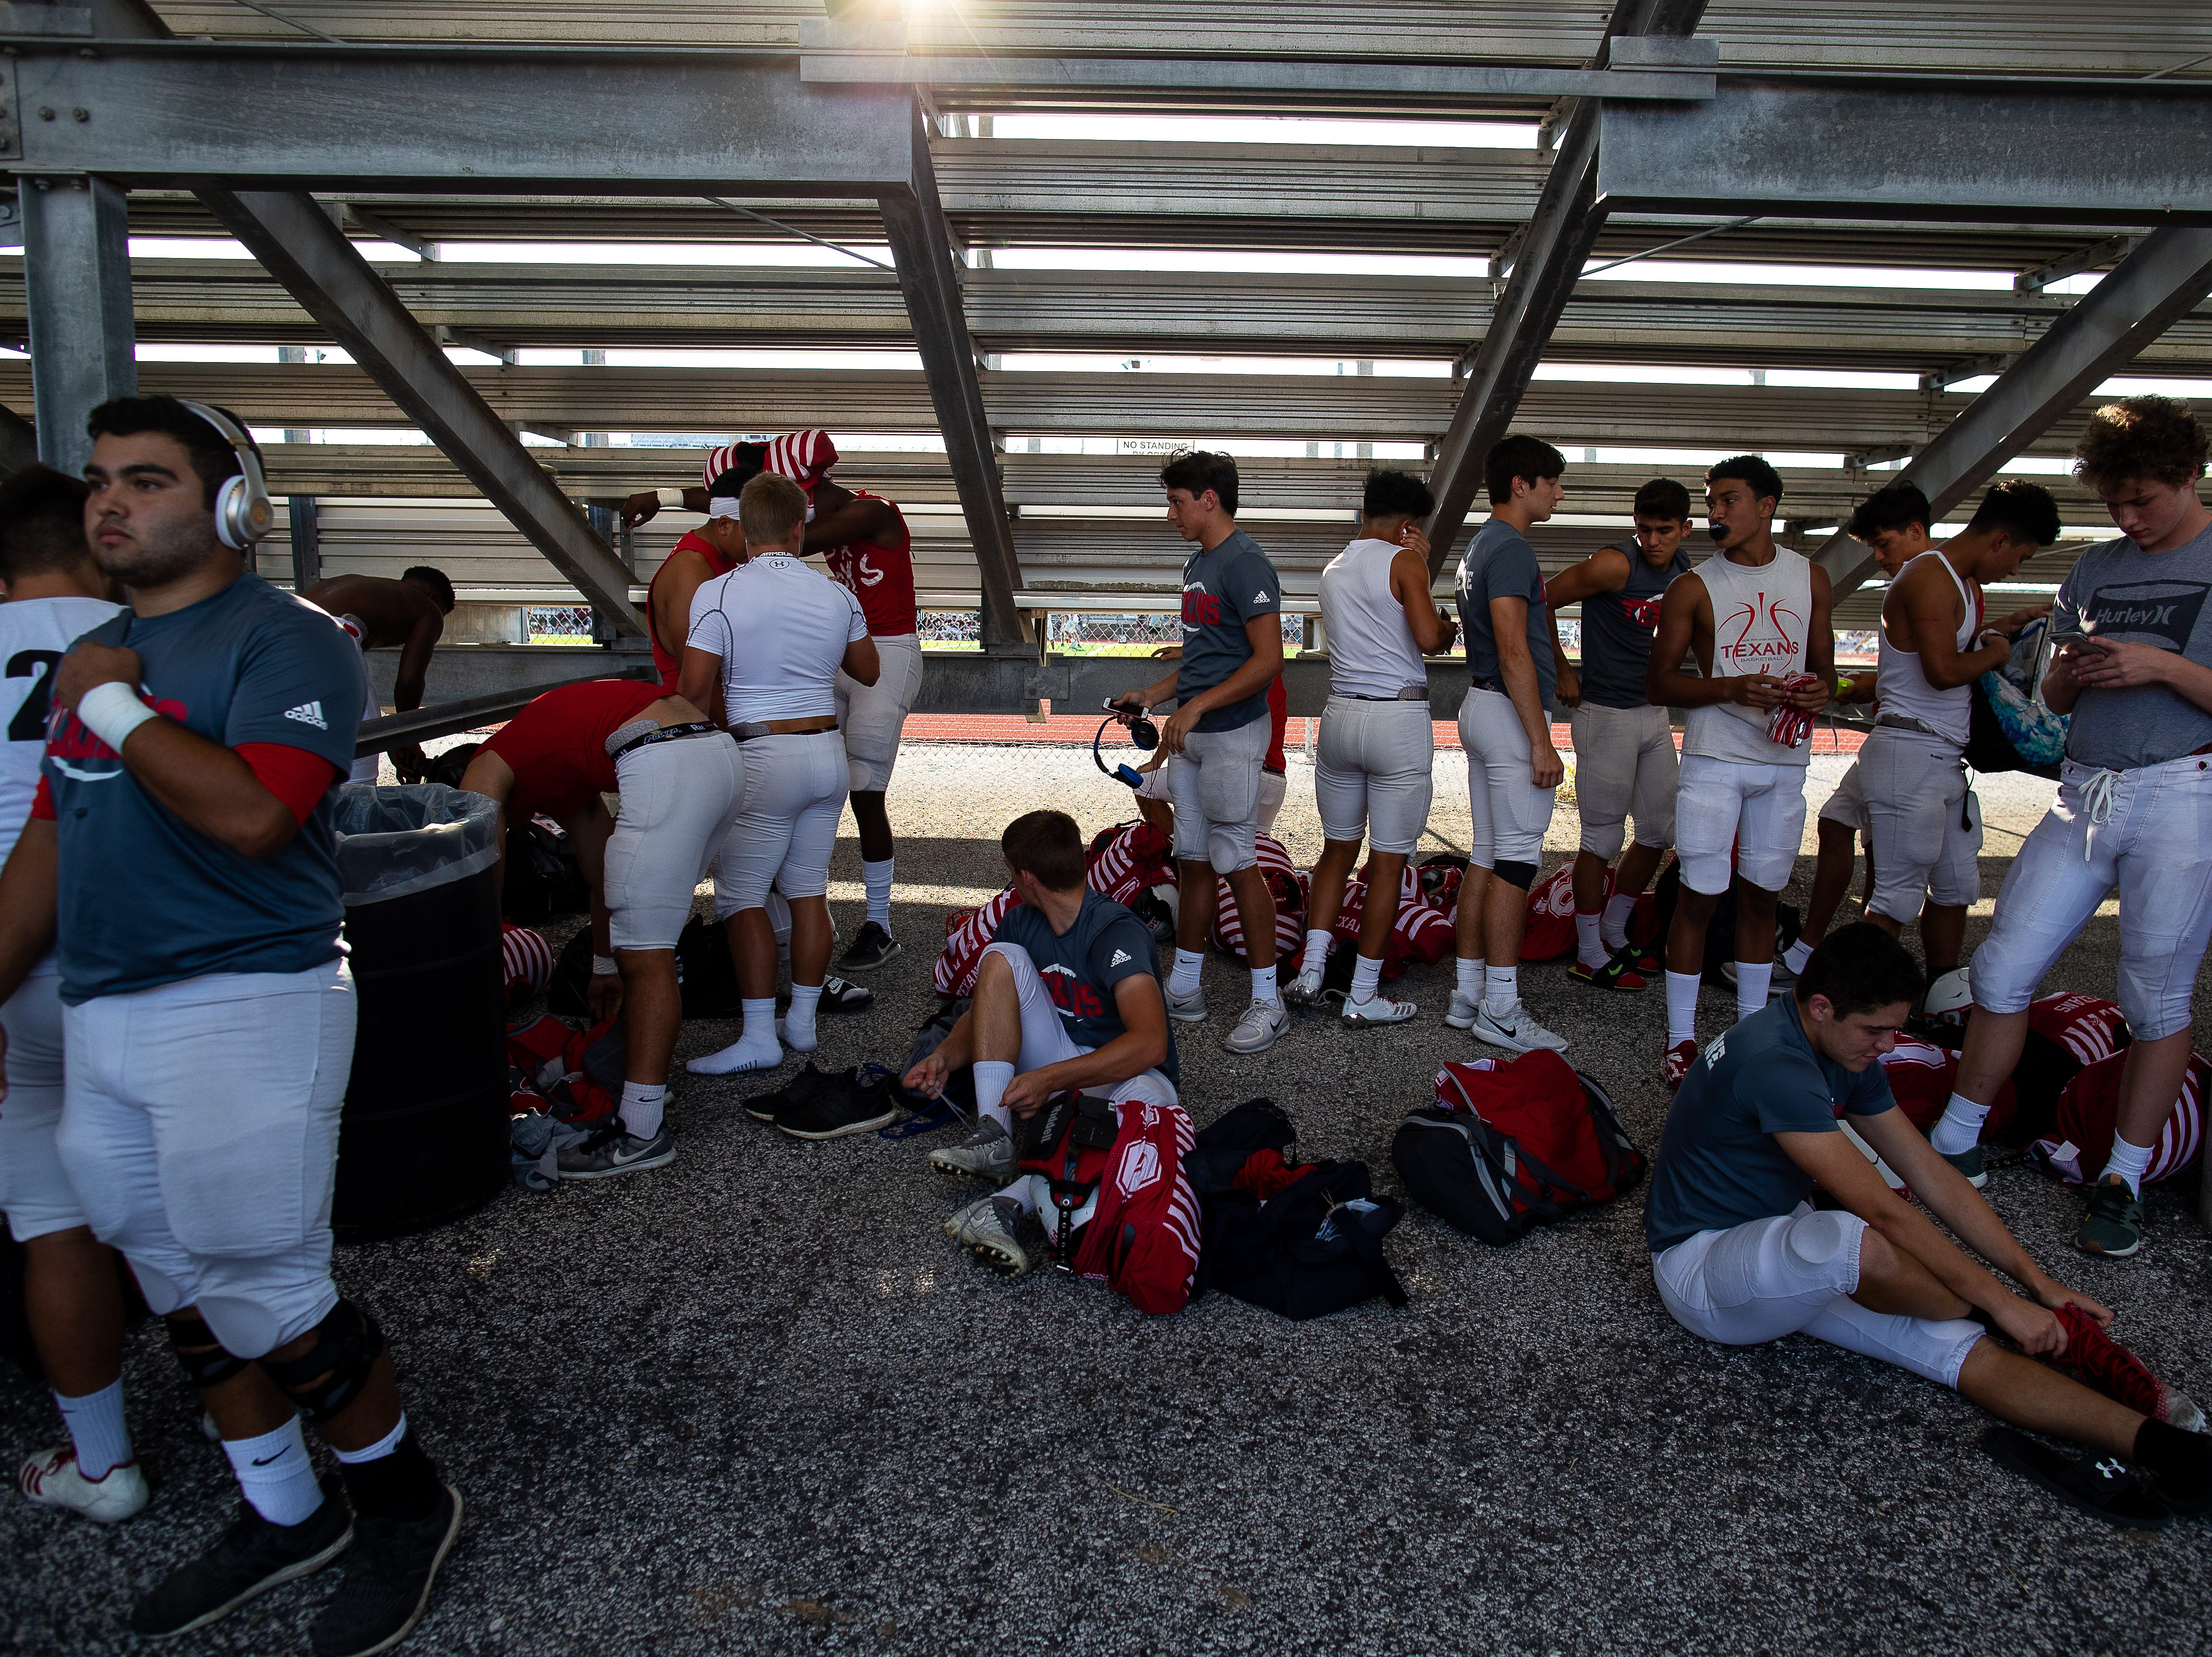 Ray football players put on their pads under the visitors bleachers before their scrimmage against Calallen at Wildcat Stadium on Friday, Aug, 24, 2018.